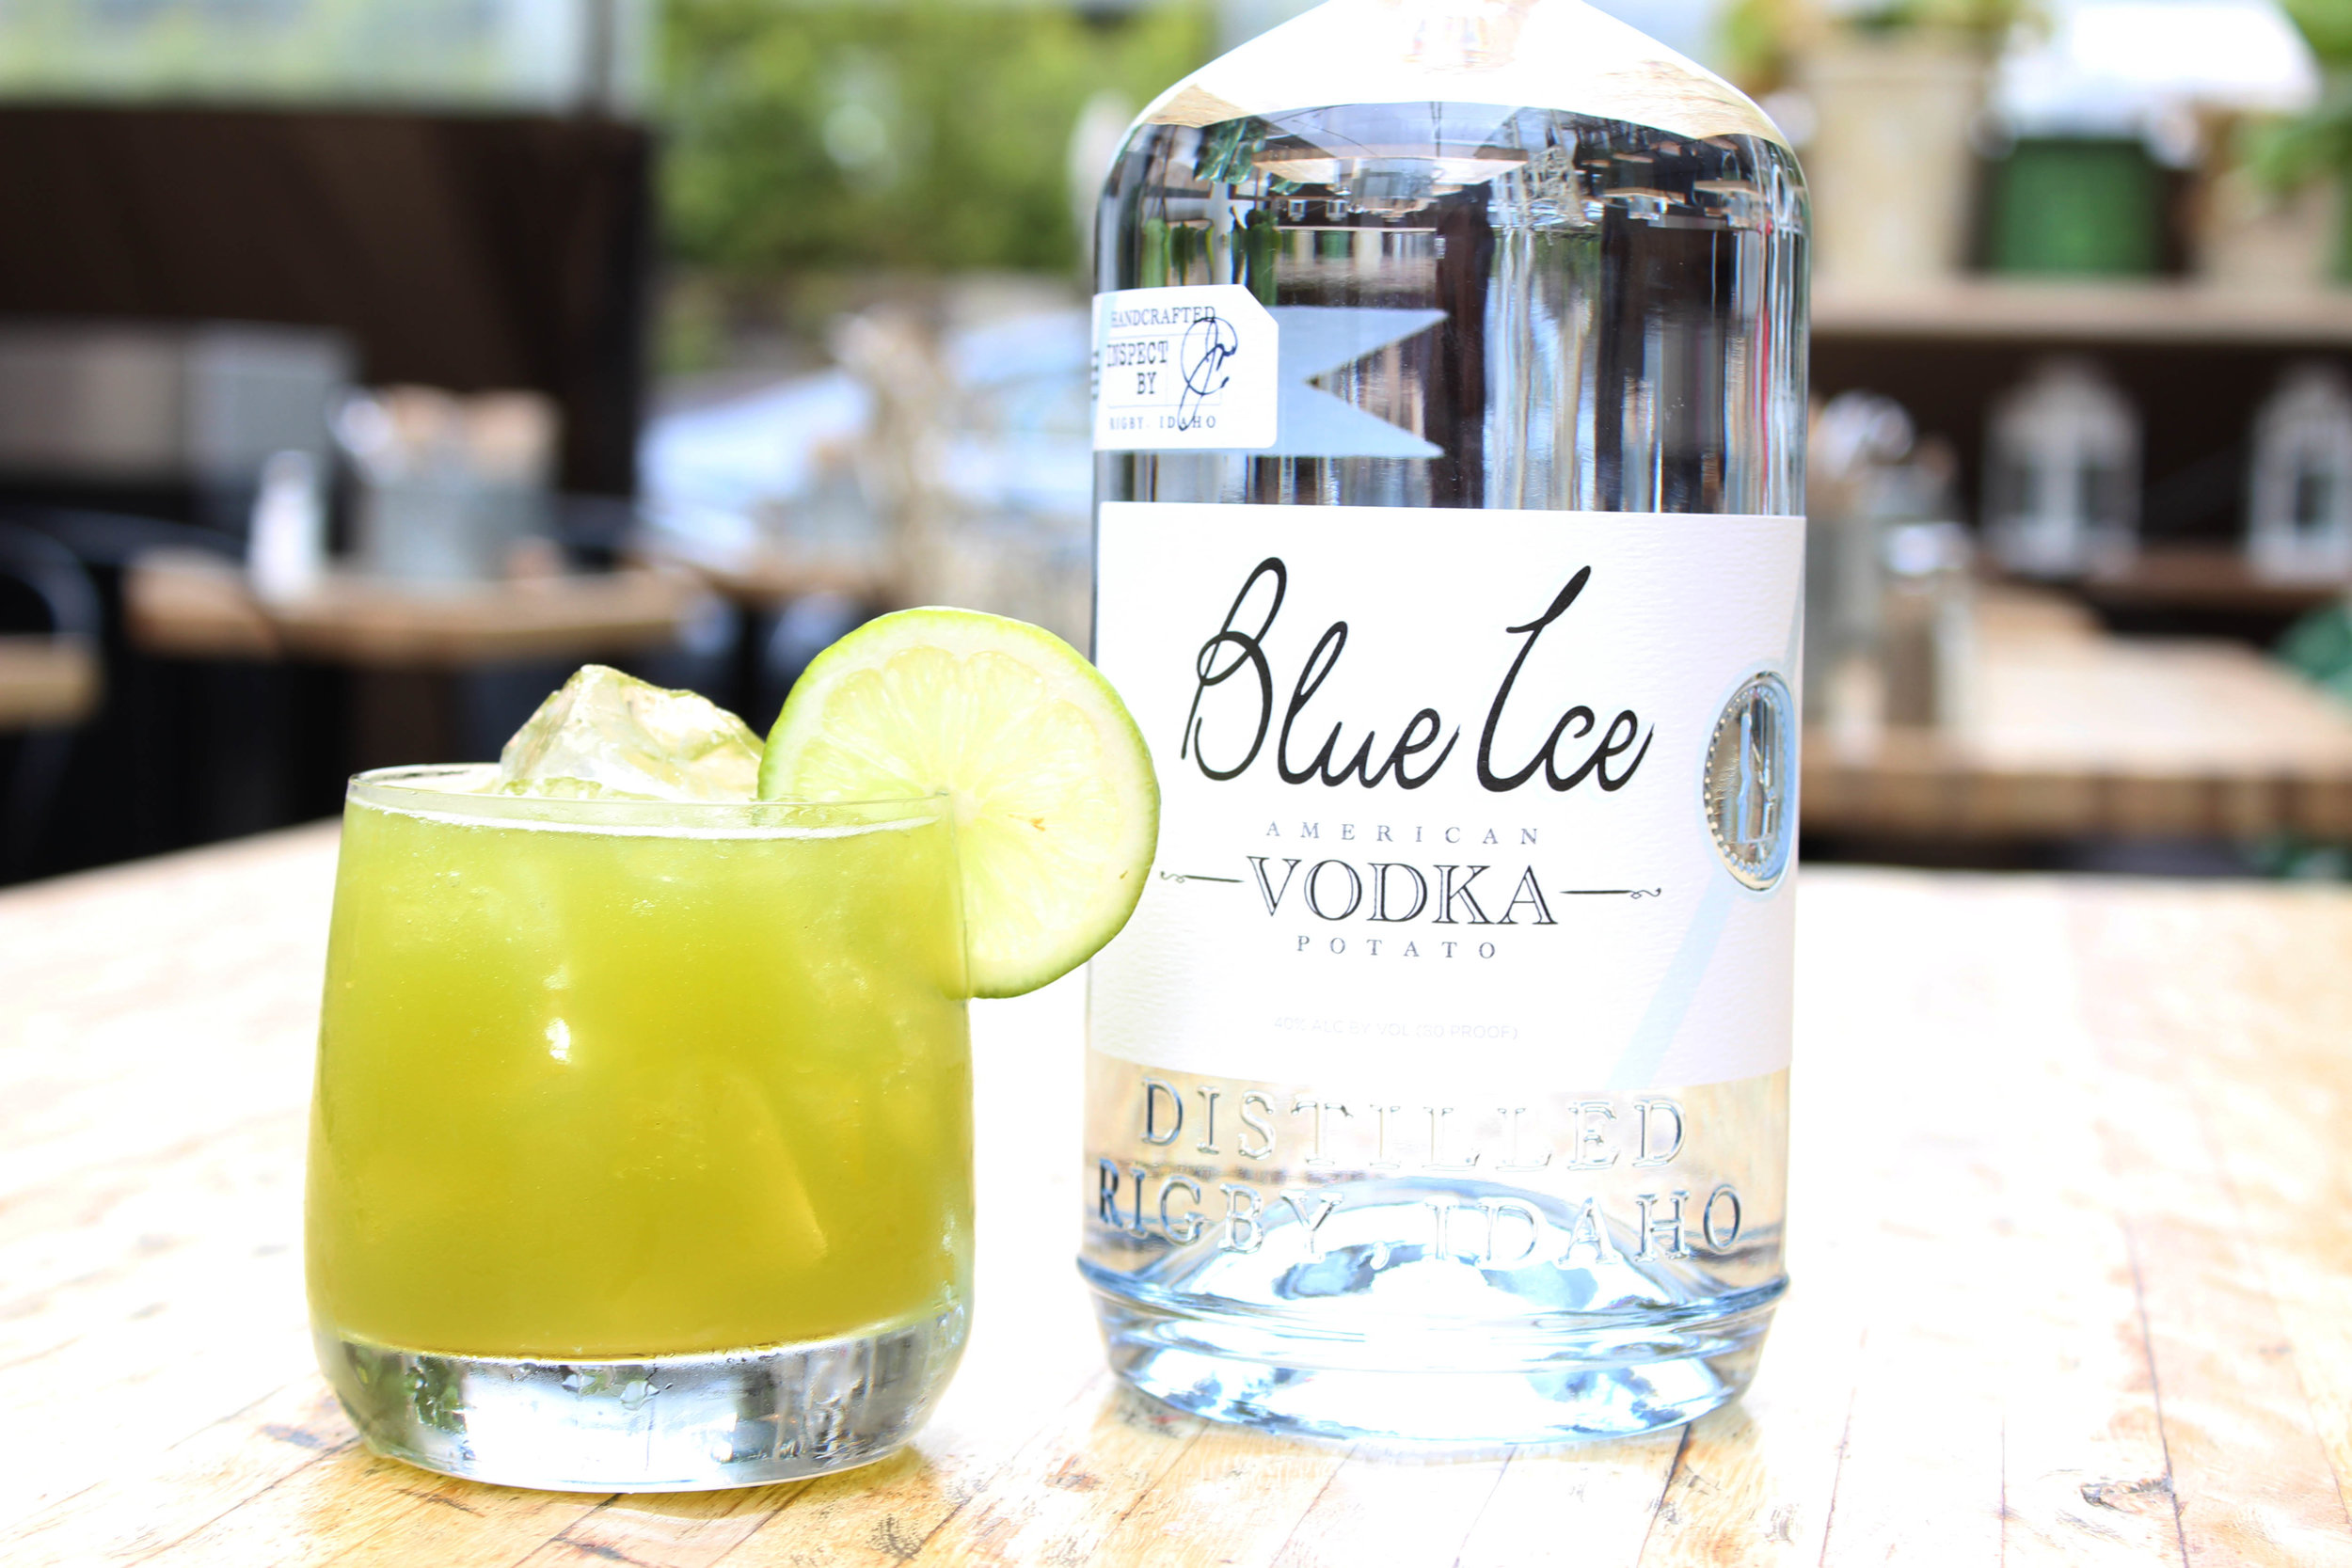 Namaste - -1oz Lime-1/2 Agave Nectar- ½oz of Rum Haven Coconut Liqueur-1oz Celery Juice- Pinch of mint-A few drops of Habanero Tincture-1.5oz Blue Ice Vodka-Himalayan Pink Salt